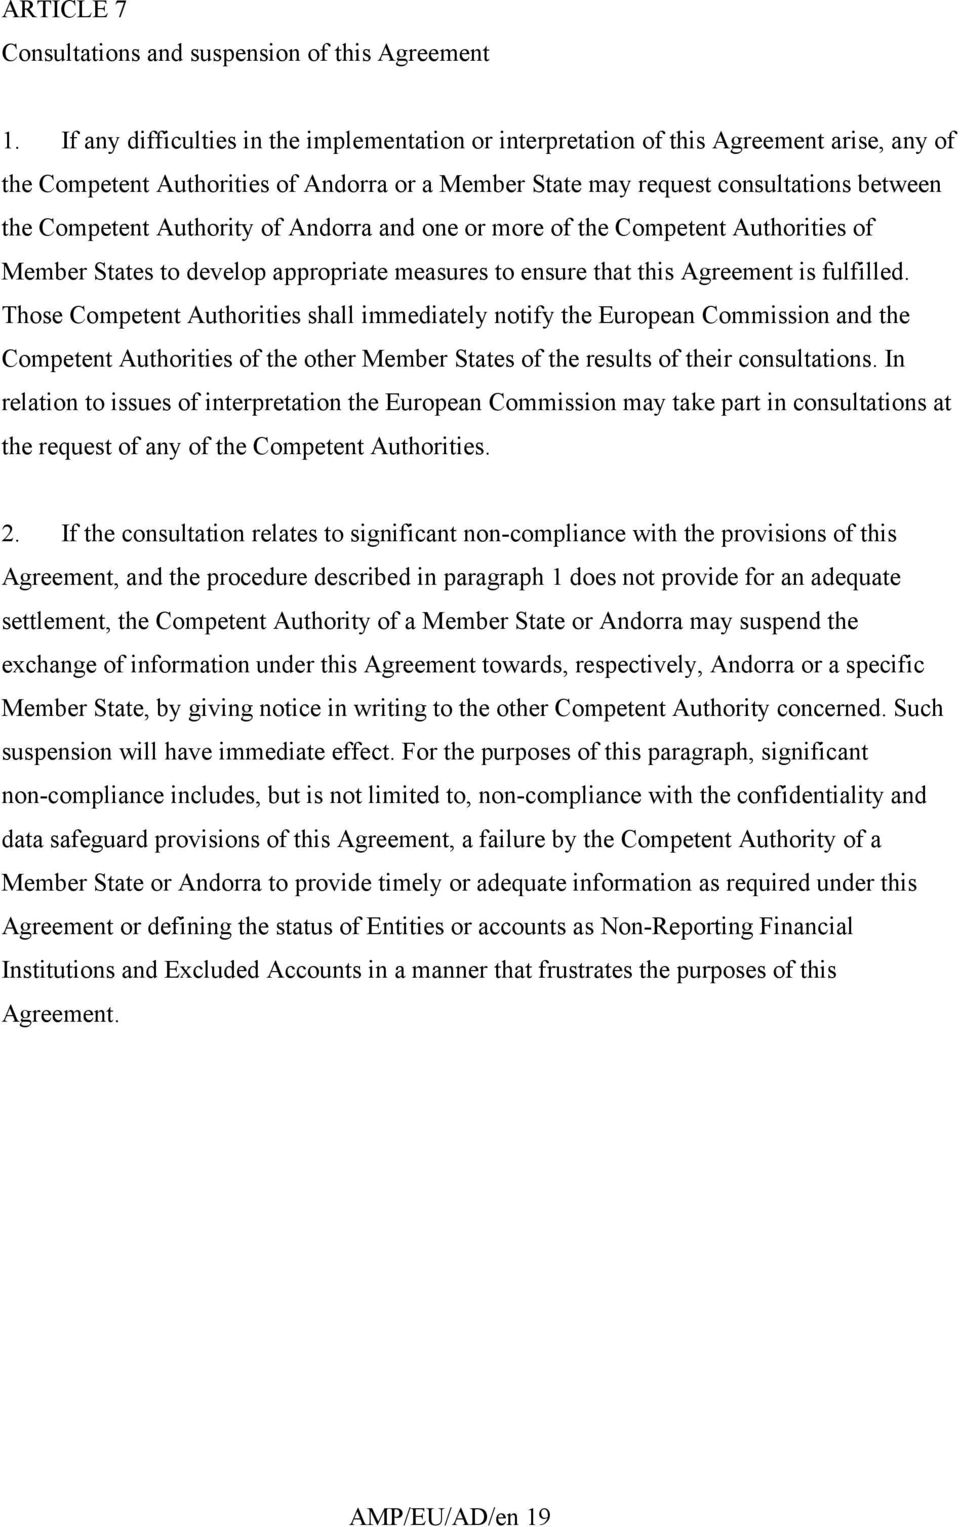 Authority of Andorra and one or more of the Competent Authorities of Member States to develop appropriate measures to ensure that this Agreement is fulfilled.